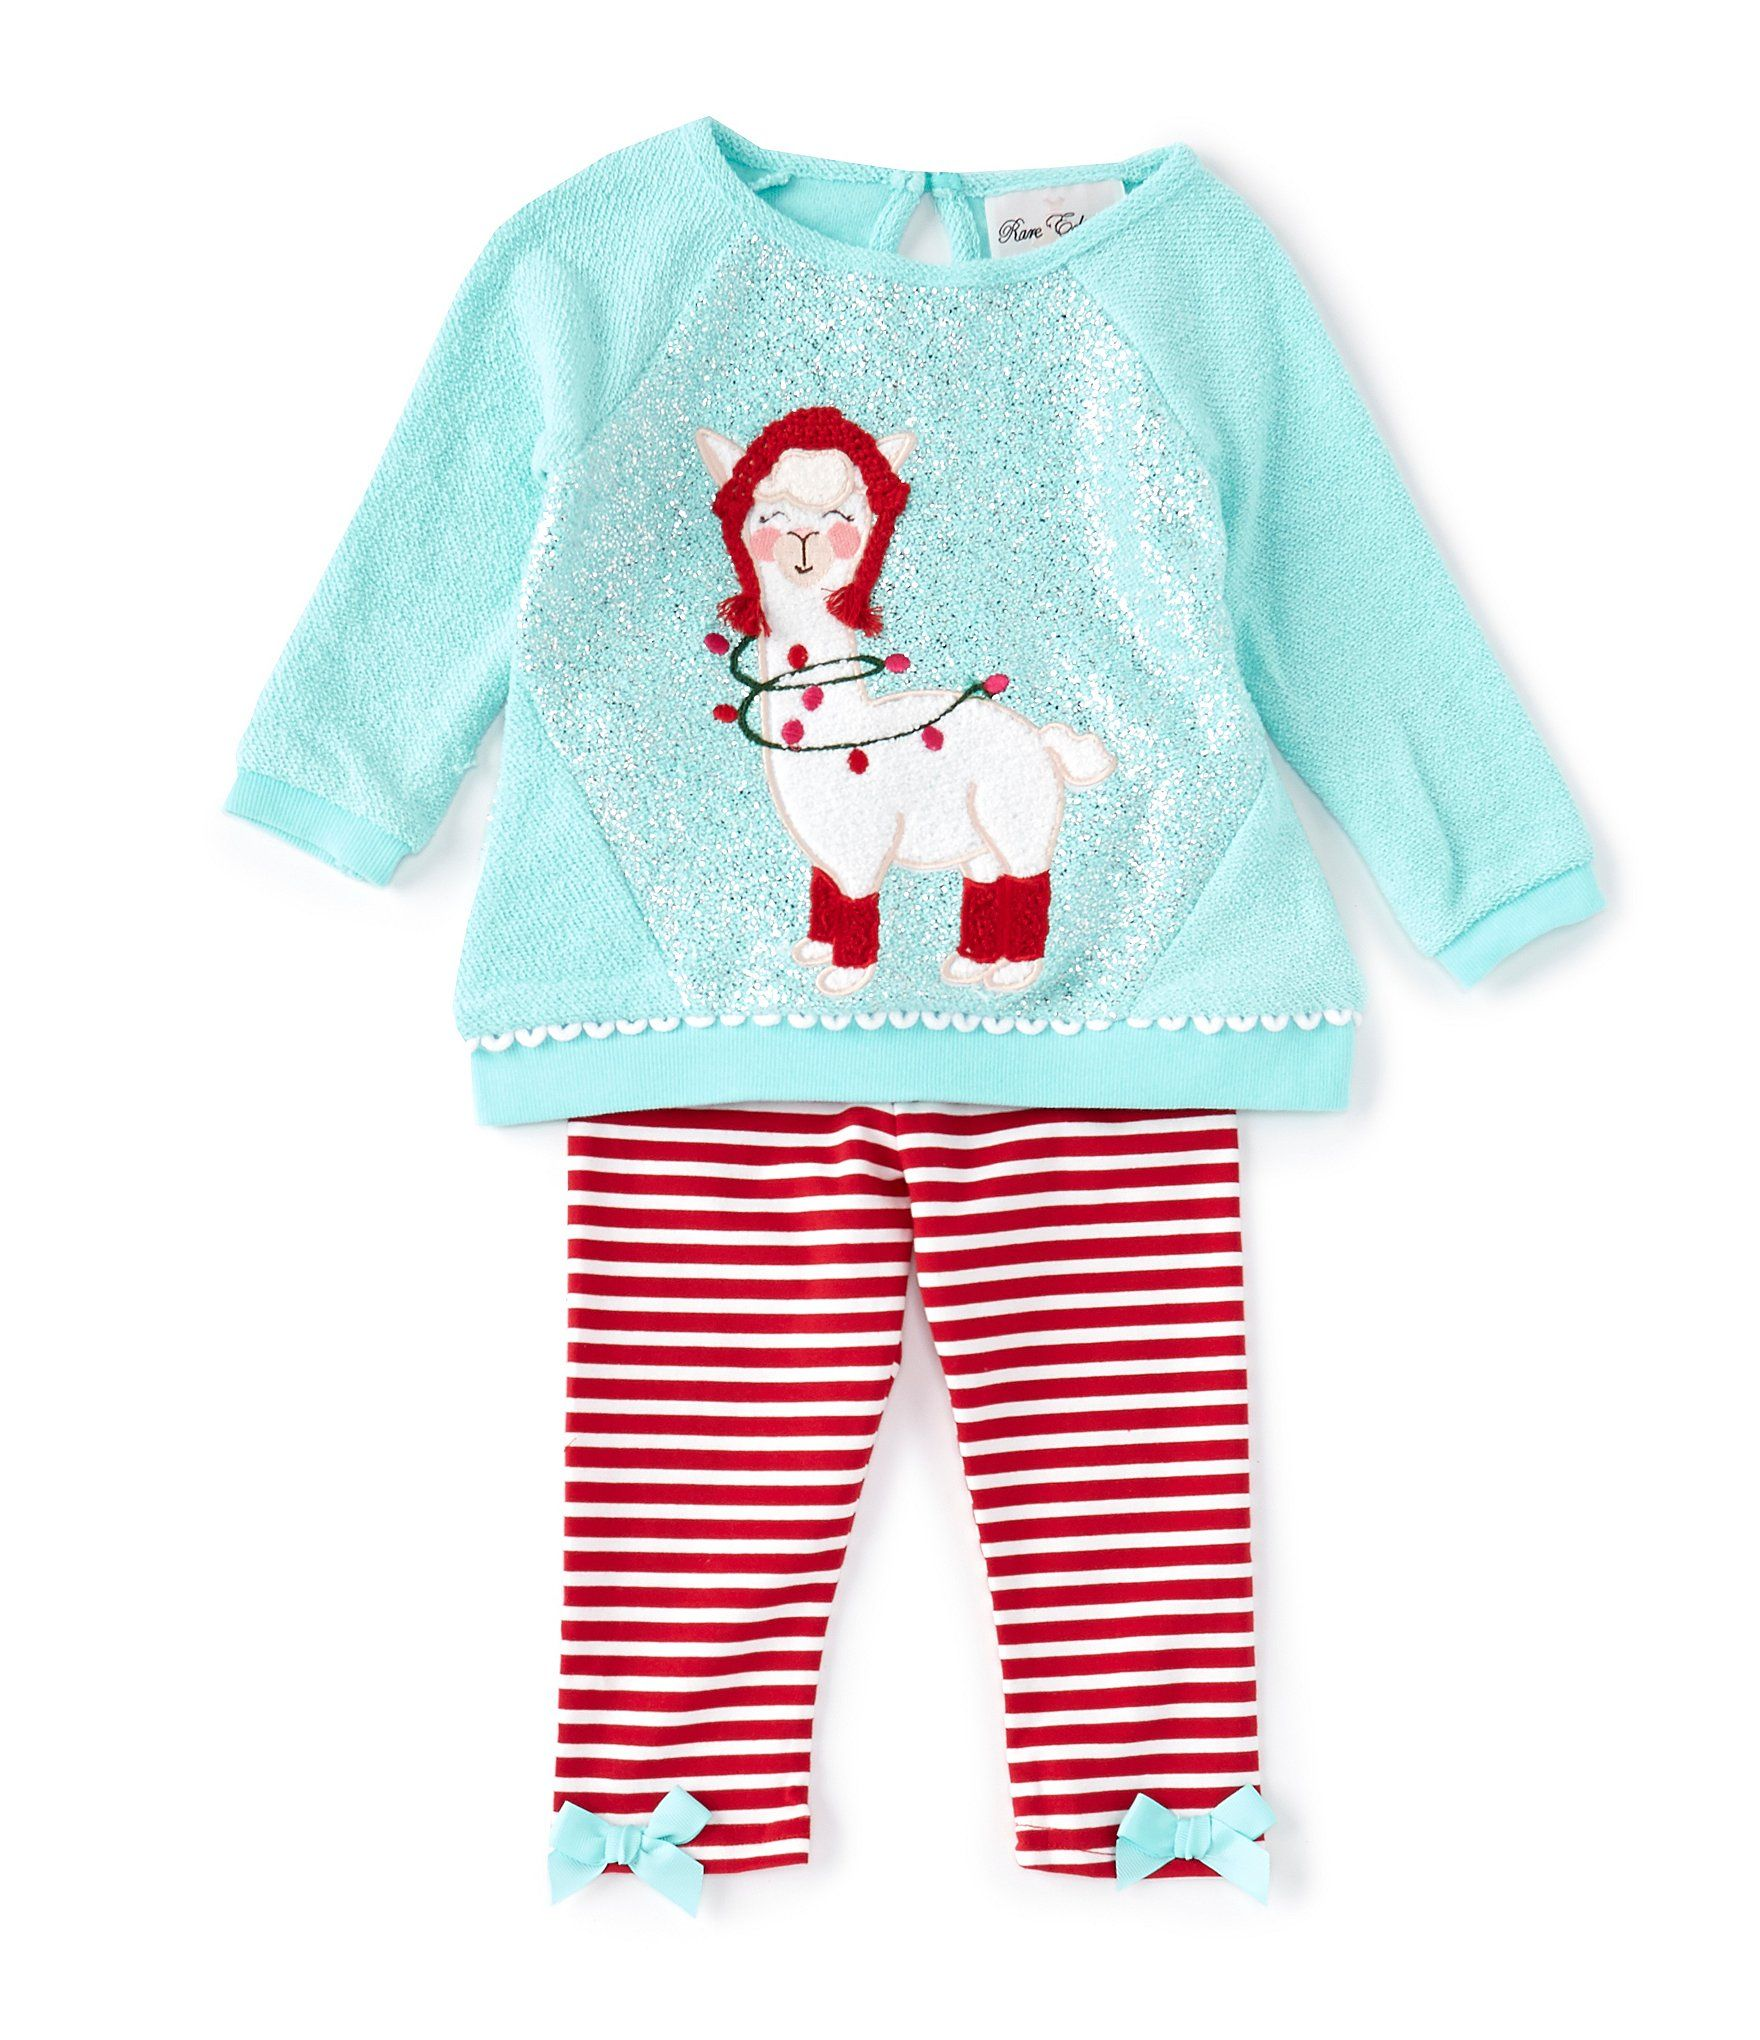 Rare Editions Baby Girls 12-24 Months Llama Sweater-Knit Tunic  Striped Leggings Set - Turquoise/Red 12 Months #stripedleggings